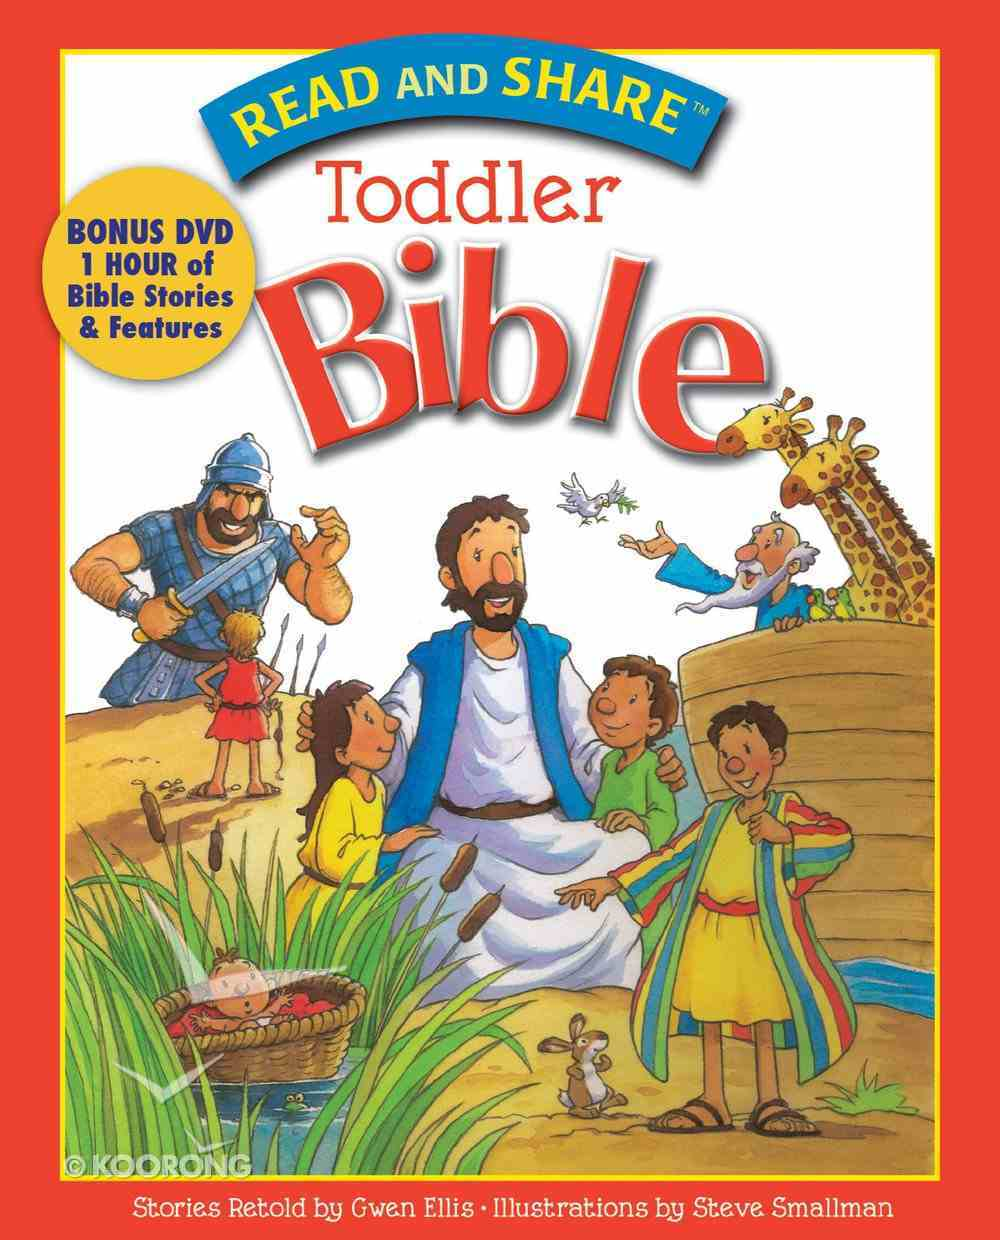 Toddler Bible (Read And Share Series) eBook